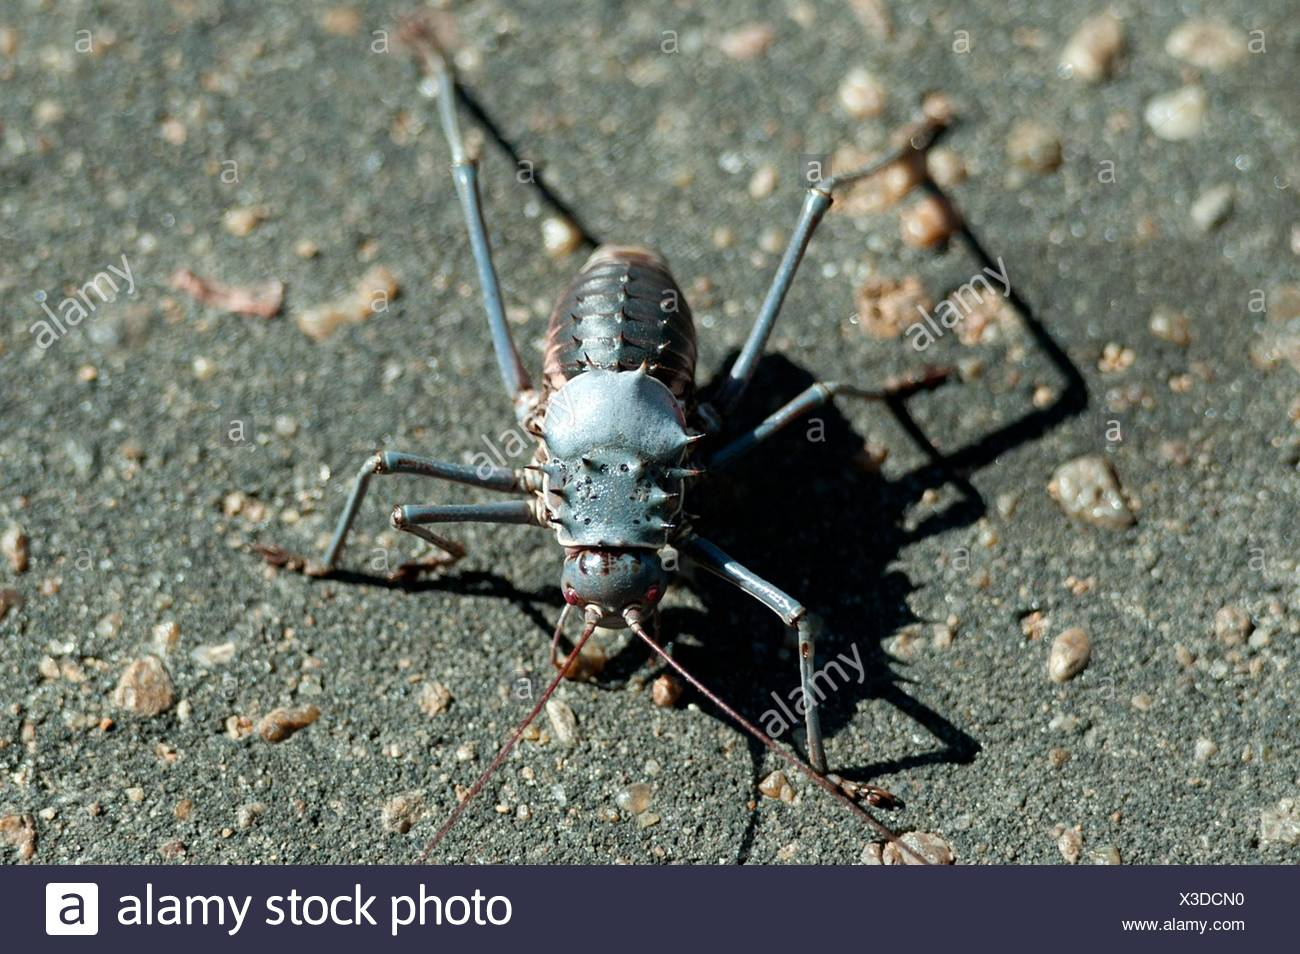 Armoured Bush Cricket (Acanthoplus discoidalis) on tarmac, Kruger National Park, Transvaal, South Africa. - Stock Image